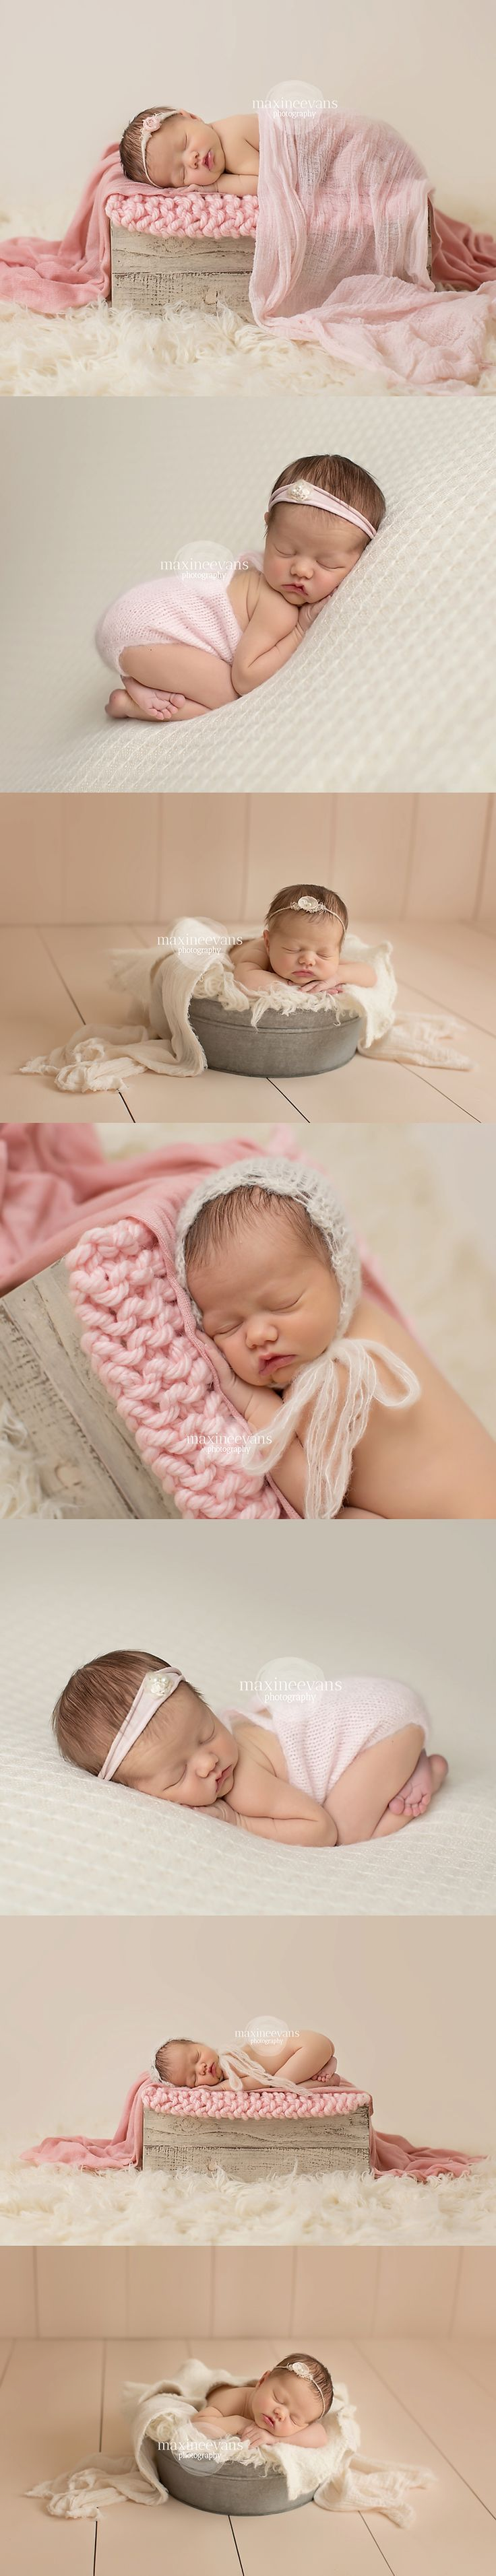 Gorgeous Newborn Baby Girl! Los Angeles Newborn Photographer                                                                                                                                                                                 More